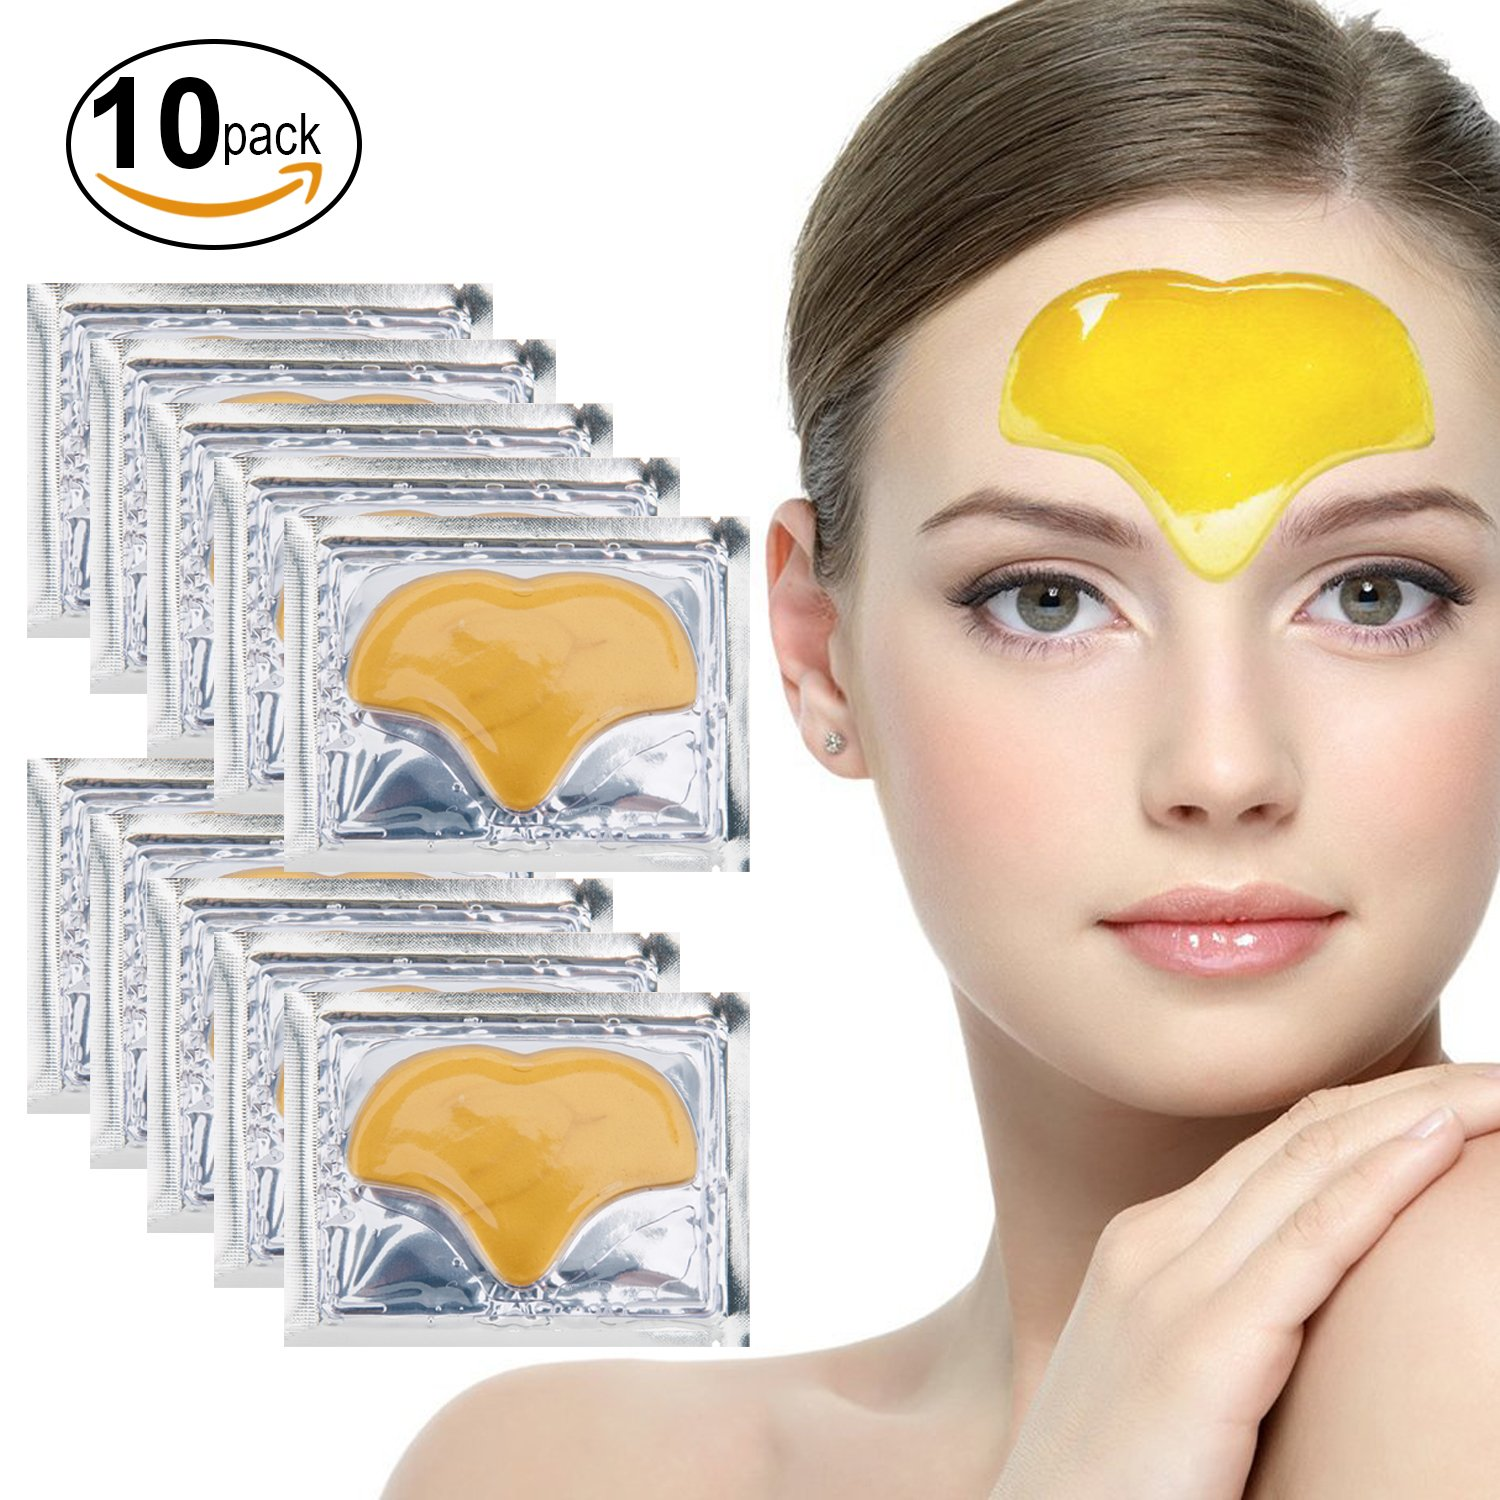 Set Kit of 10pcs 24K Gold Golden Collagen Gel Crystal Masks Forehead Patches for Wrinkles Removing, Frown Lines Reduction, Deep Skin Pores Cleansing, Blemishes Blackheads Removal and Hydration VAGASHOP